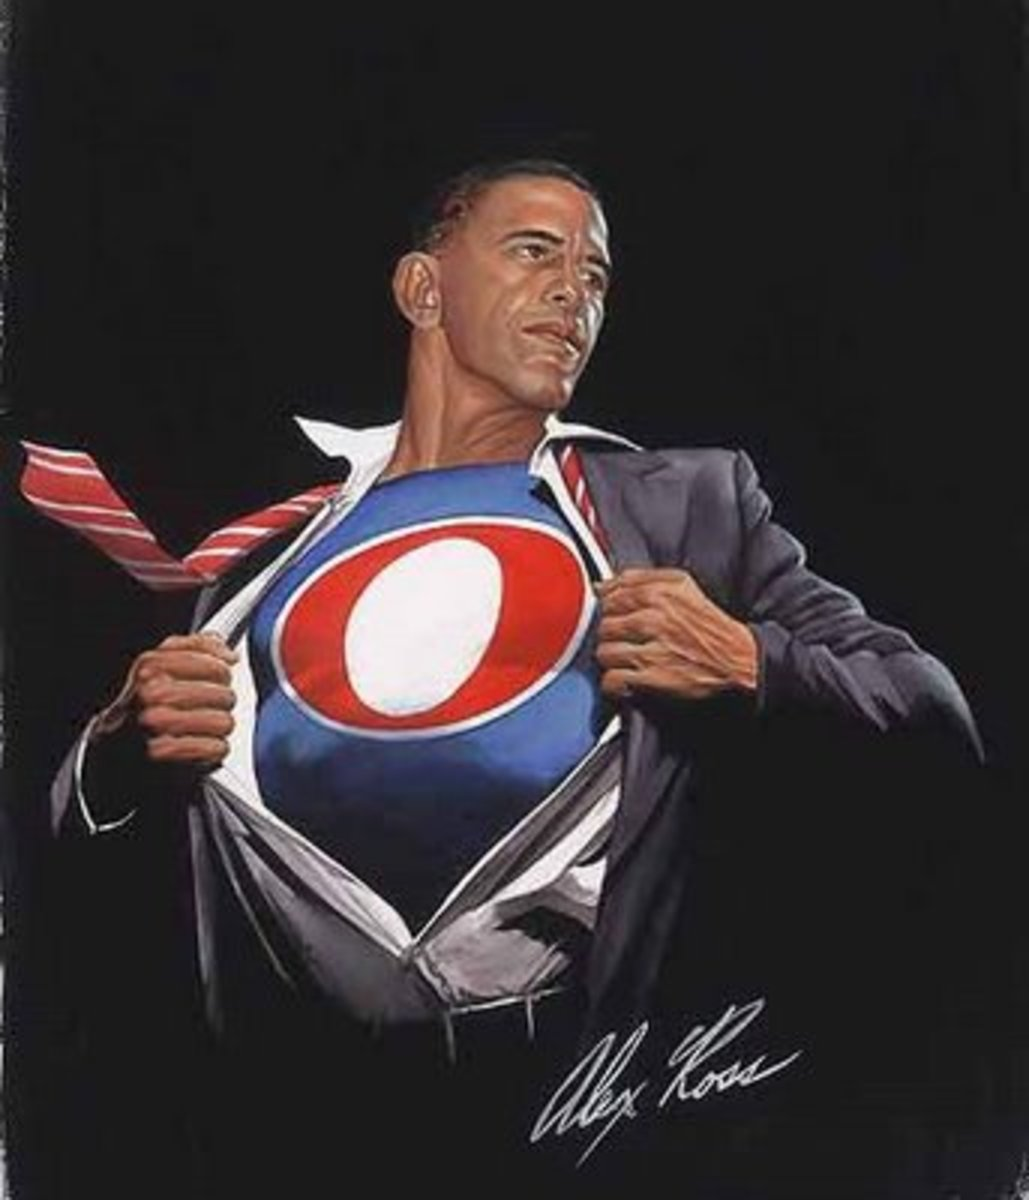 "TVI Banner was created by stealing this Alex Ross picture ""Obamaman"", chopped off Mr. Obama's head and waist to get rid of the signature, then erased the O logo and replaced with TVI Express logo. Just compare the back of hand, the tie, and other det"